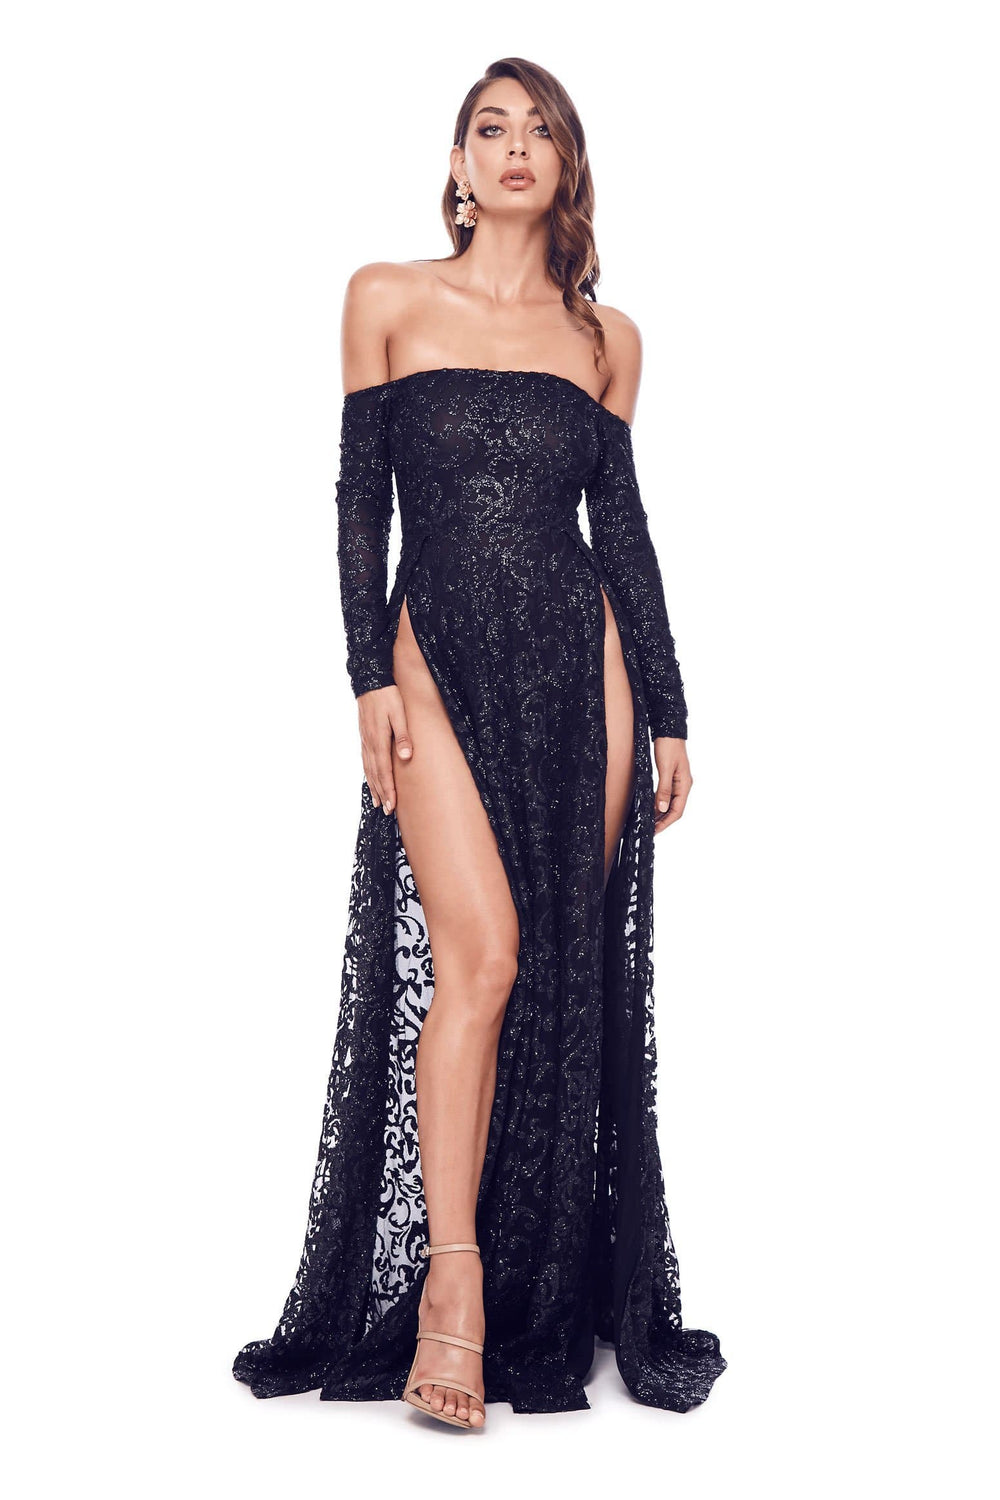 Flame - Black Glitter Gown with Long Off-Shoulder Sleeves